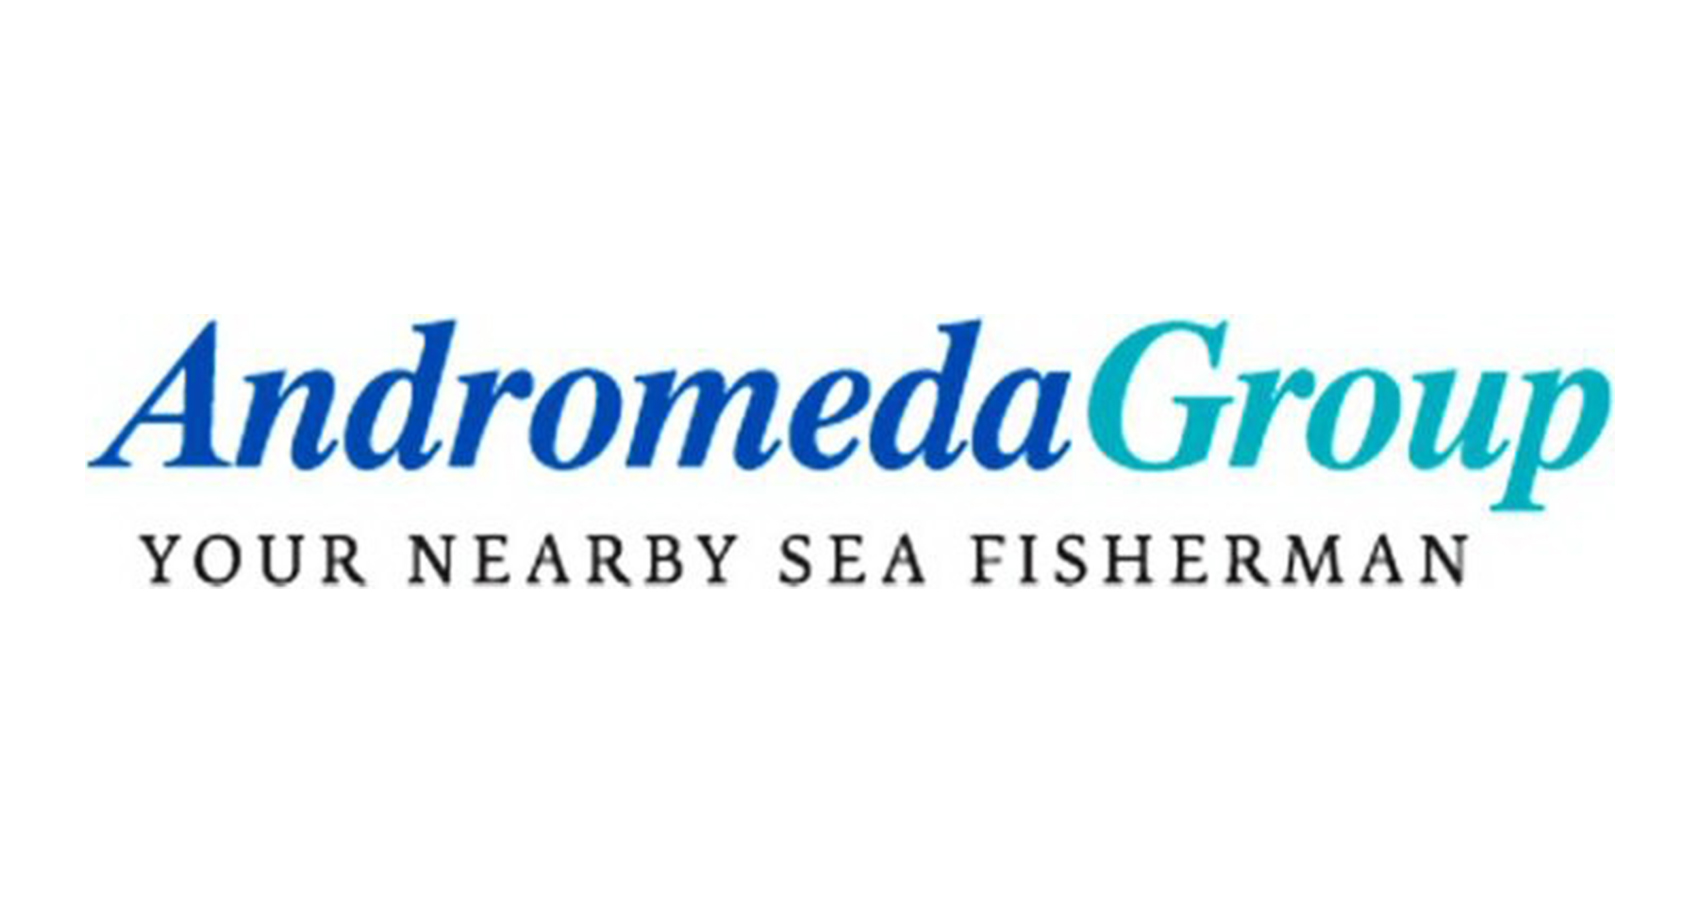 Andromeda group